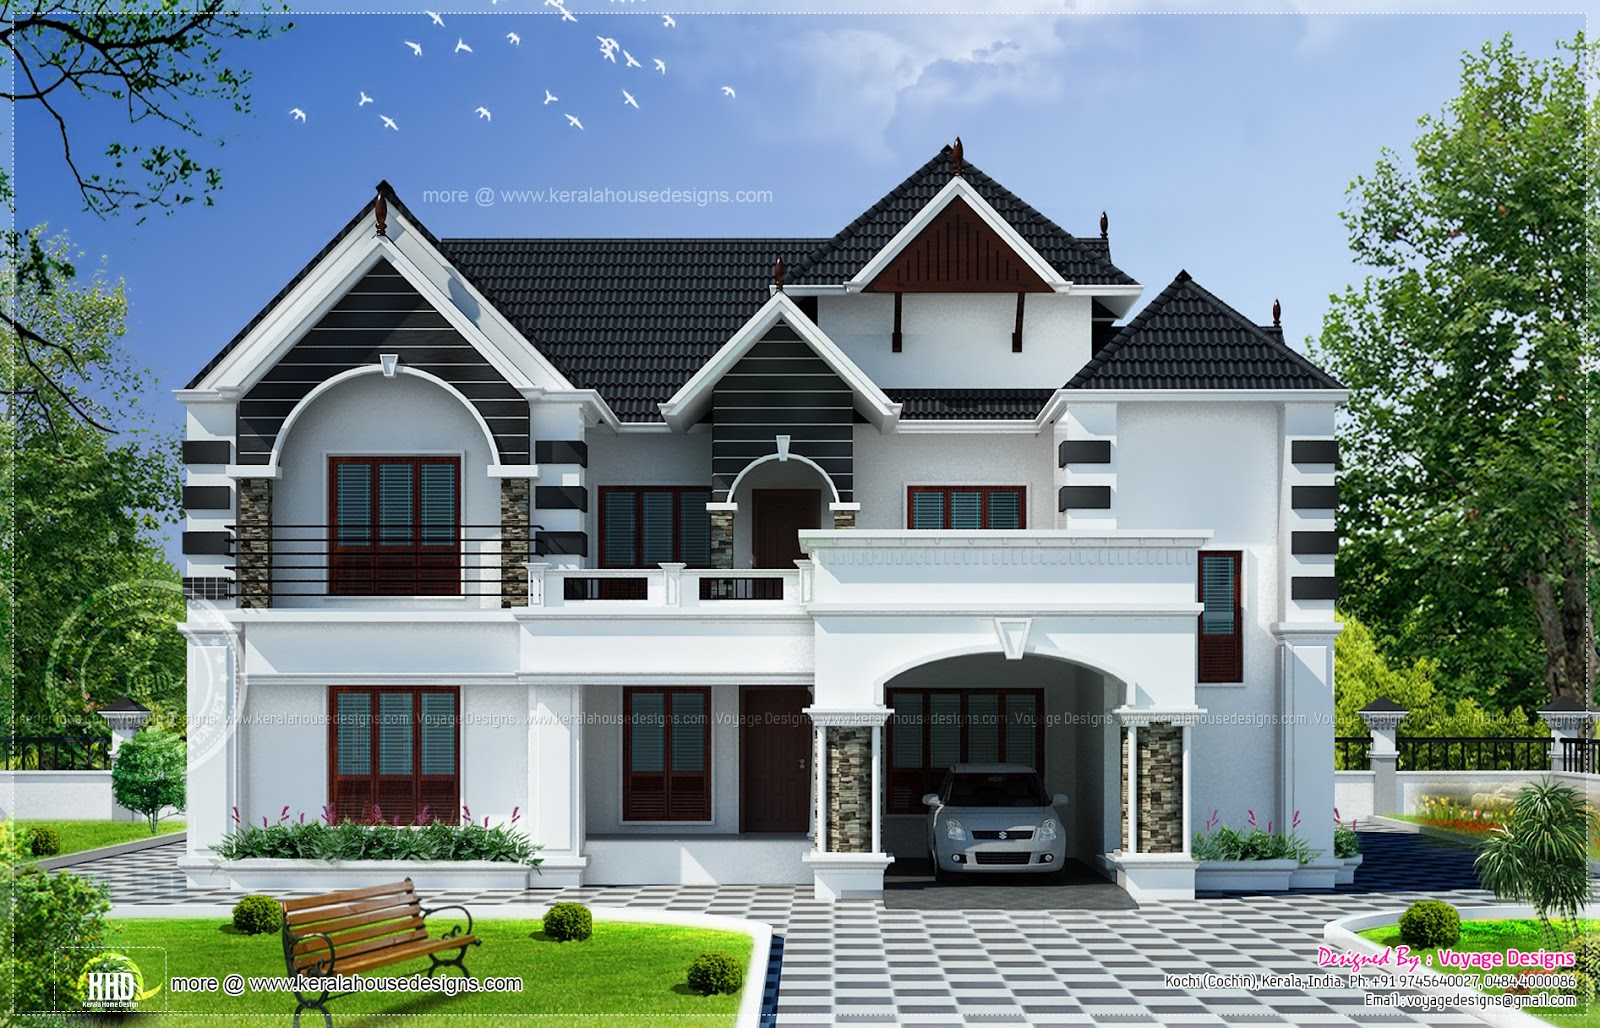 4 bedroom colonial style house kerala home design and for Kerala home style 3 bedroom